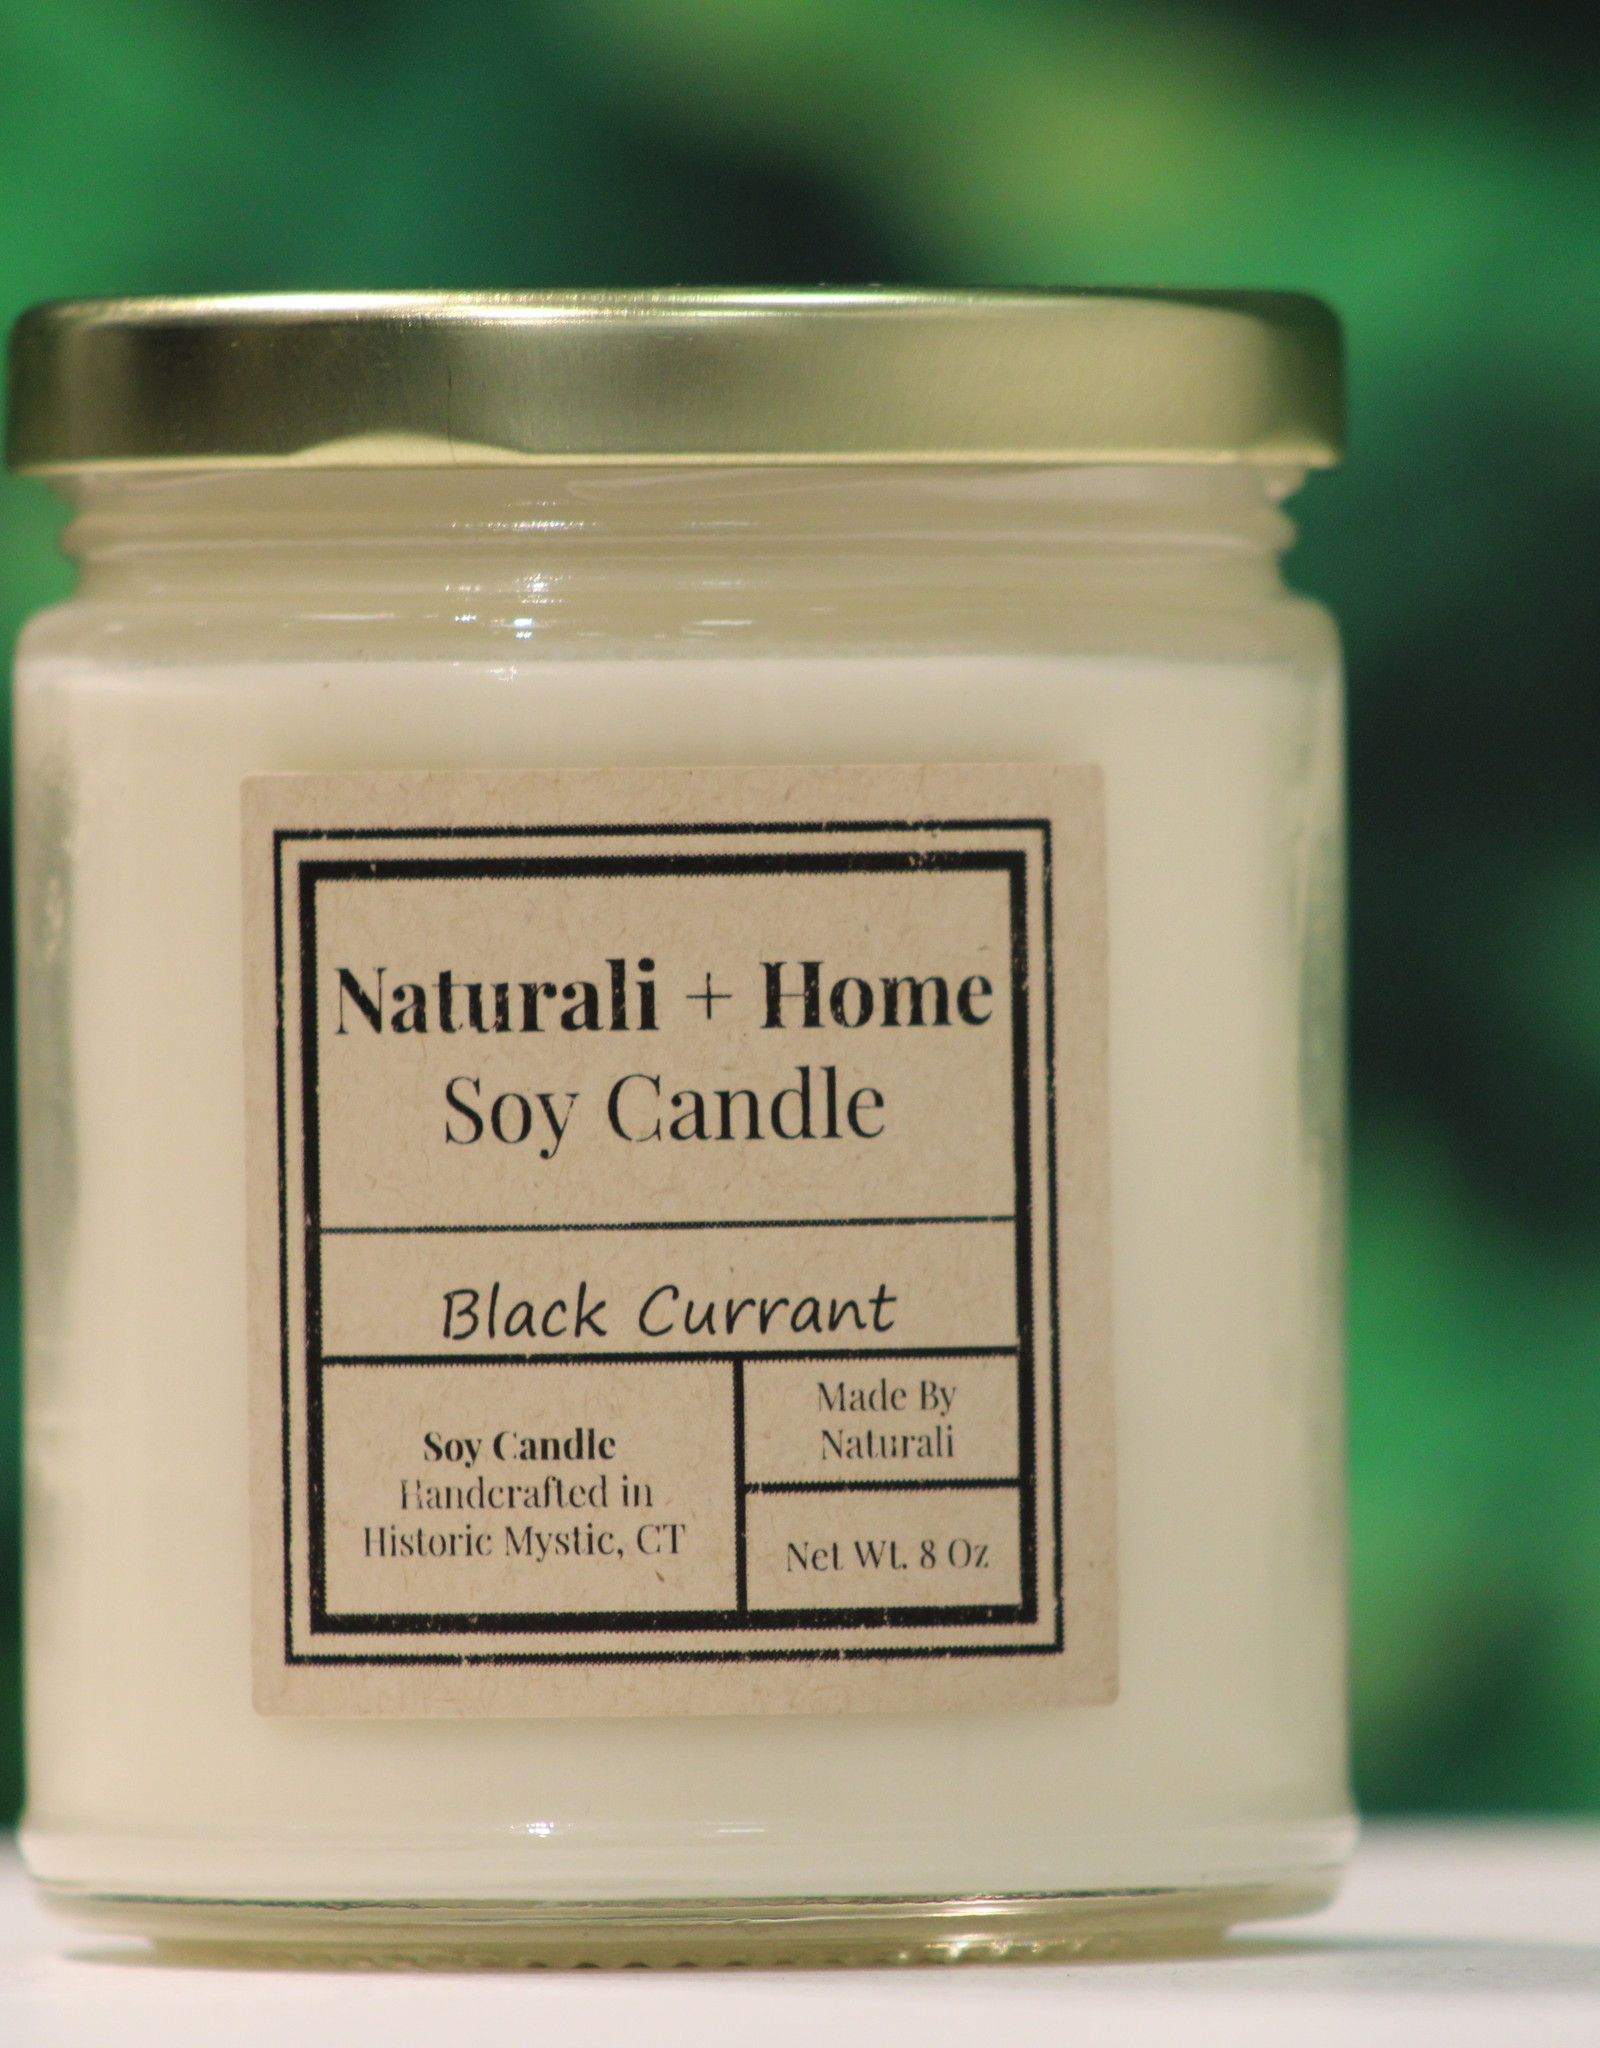 Naturali Home Black Currant Soy Candle